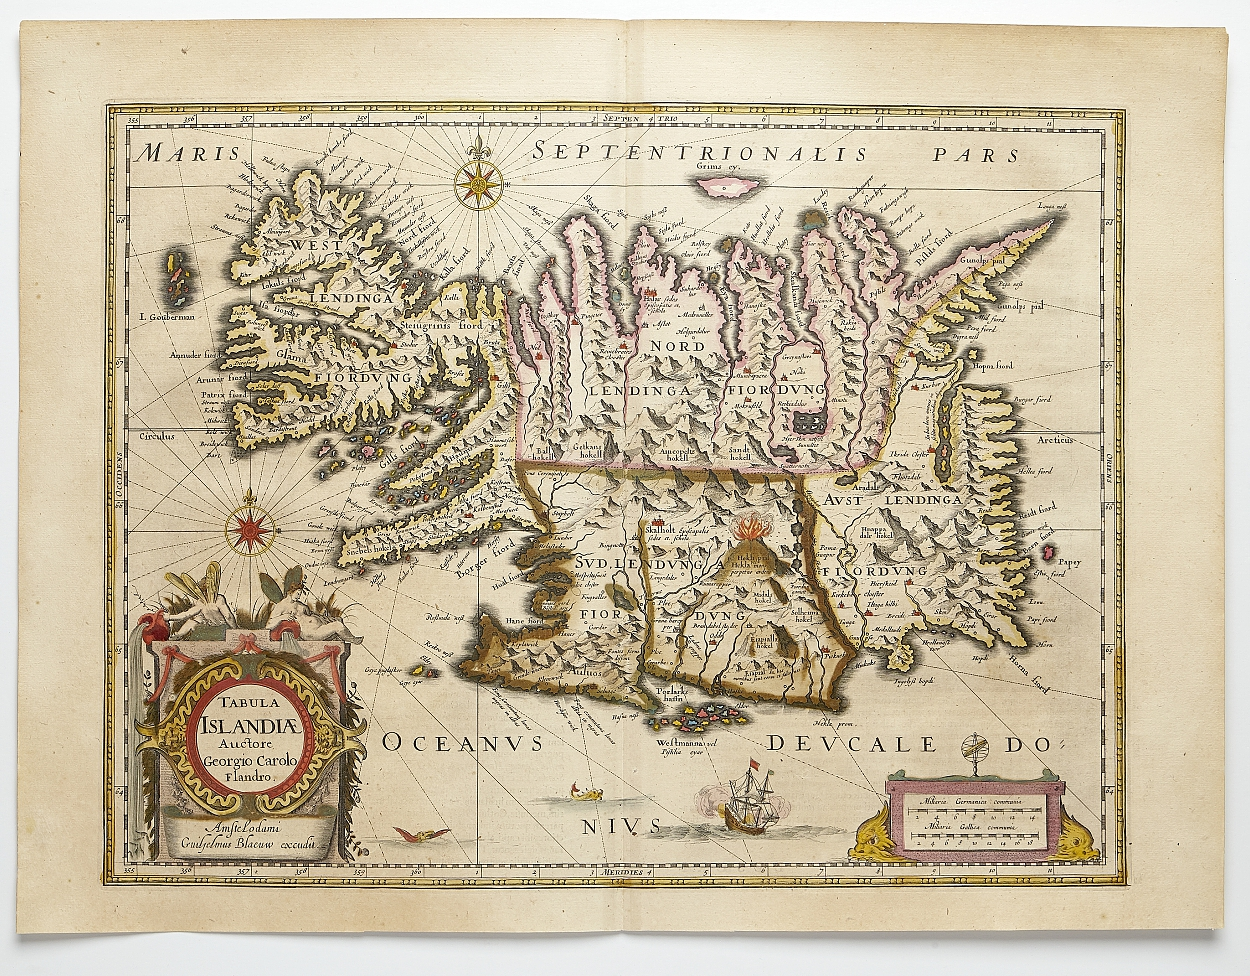 Fine map of Iceland by Blaeu c. 1640